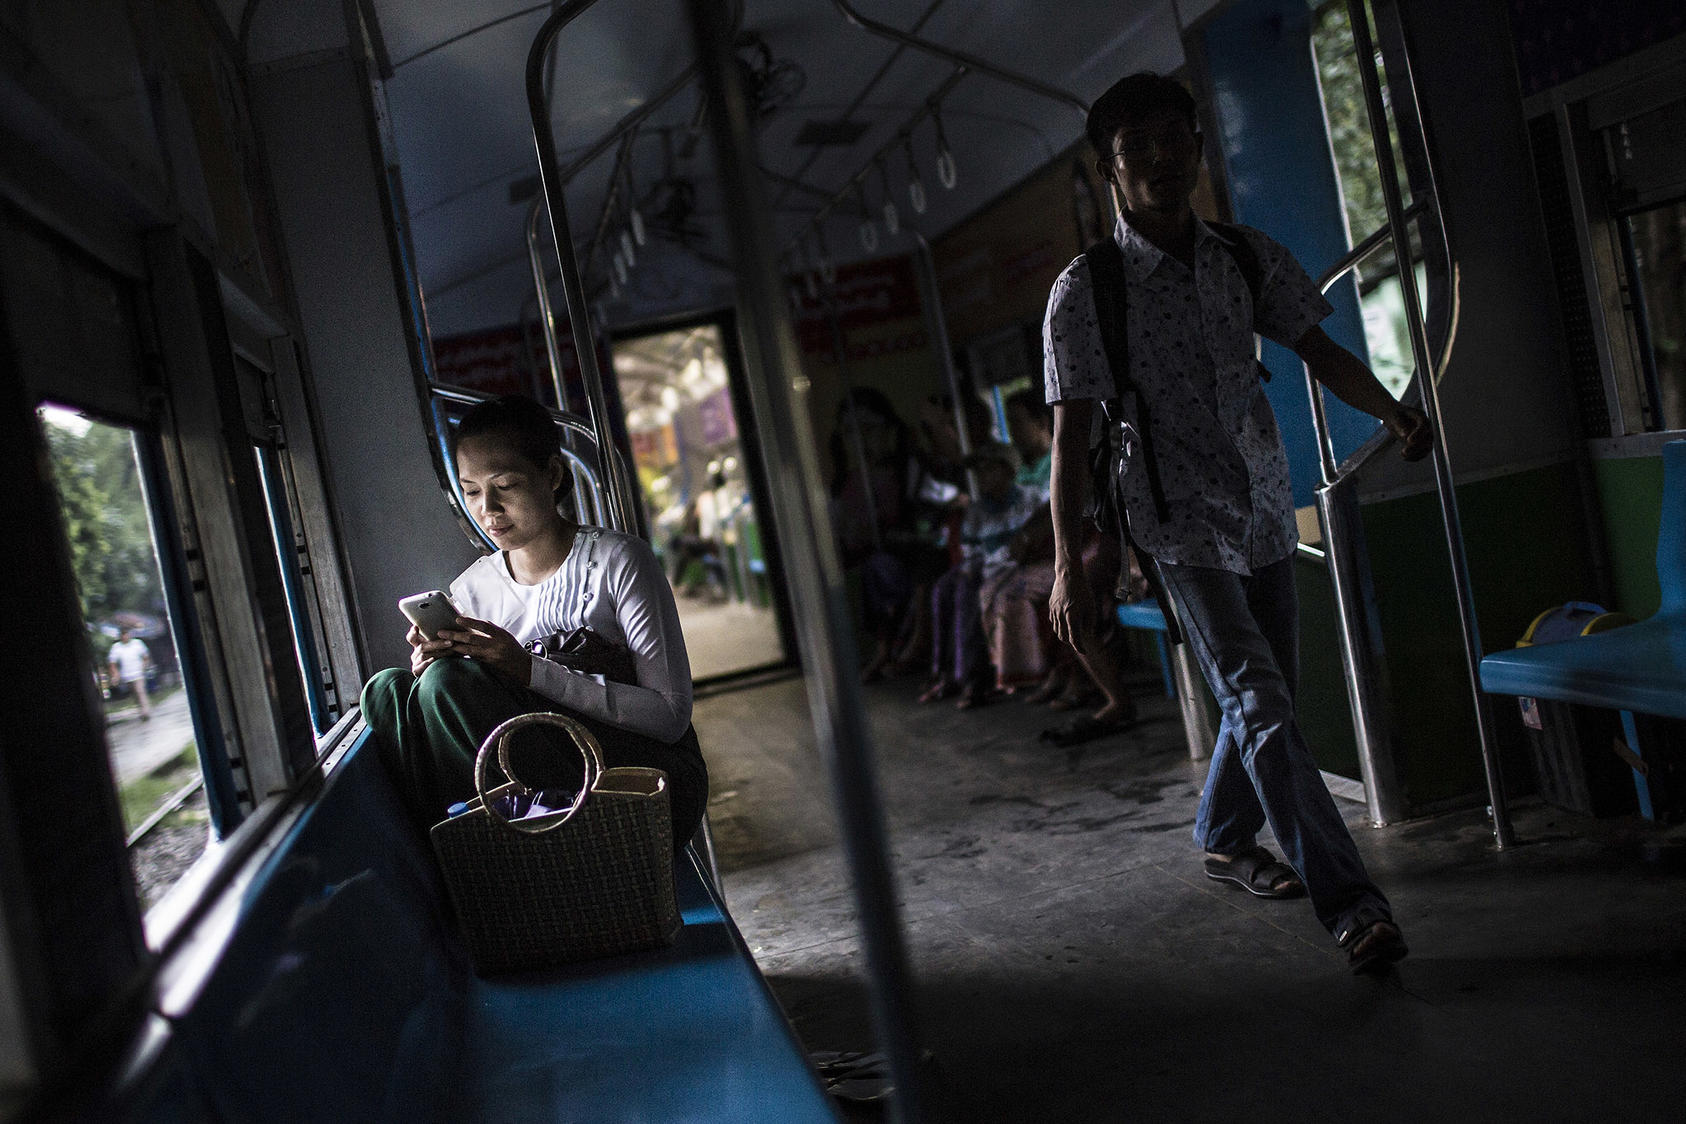 A woman uses her cell phone on the Circle Line train in Yangon, Myanmar, June 2014. (Mathieu Willcocks/The New York Times)